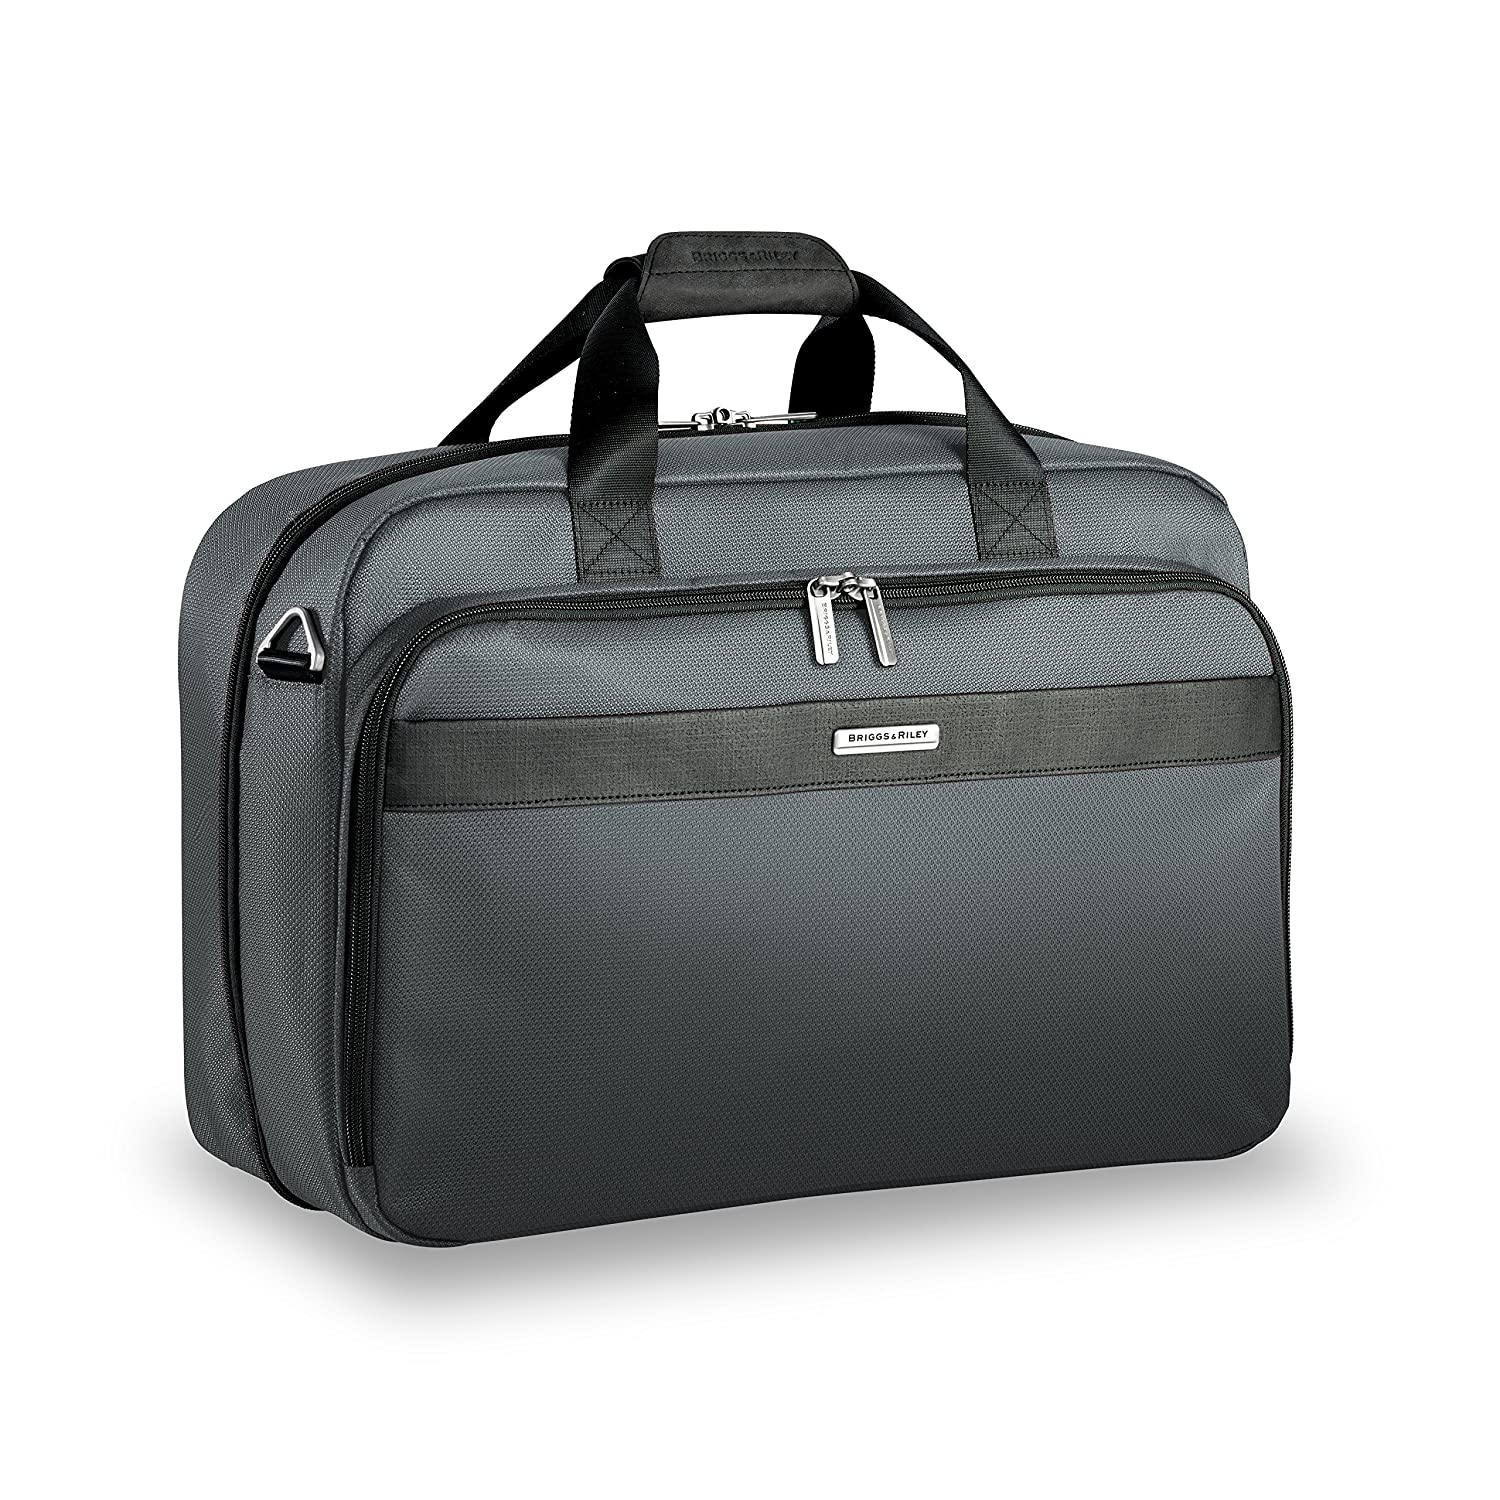 Briggs & Riley Briggs and Riley Transcend Clamshell Cabin Bag, Slate, One Size (Model: TD441-47) BRJ68